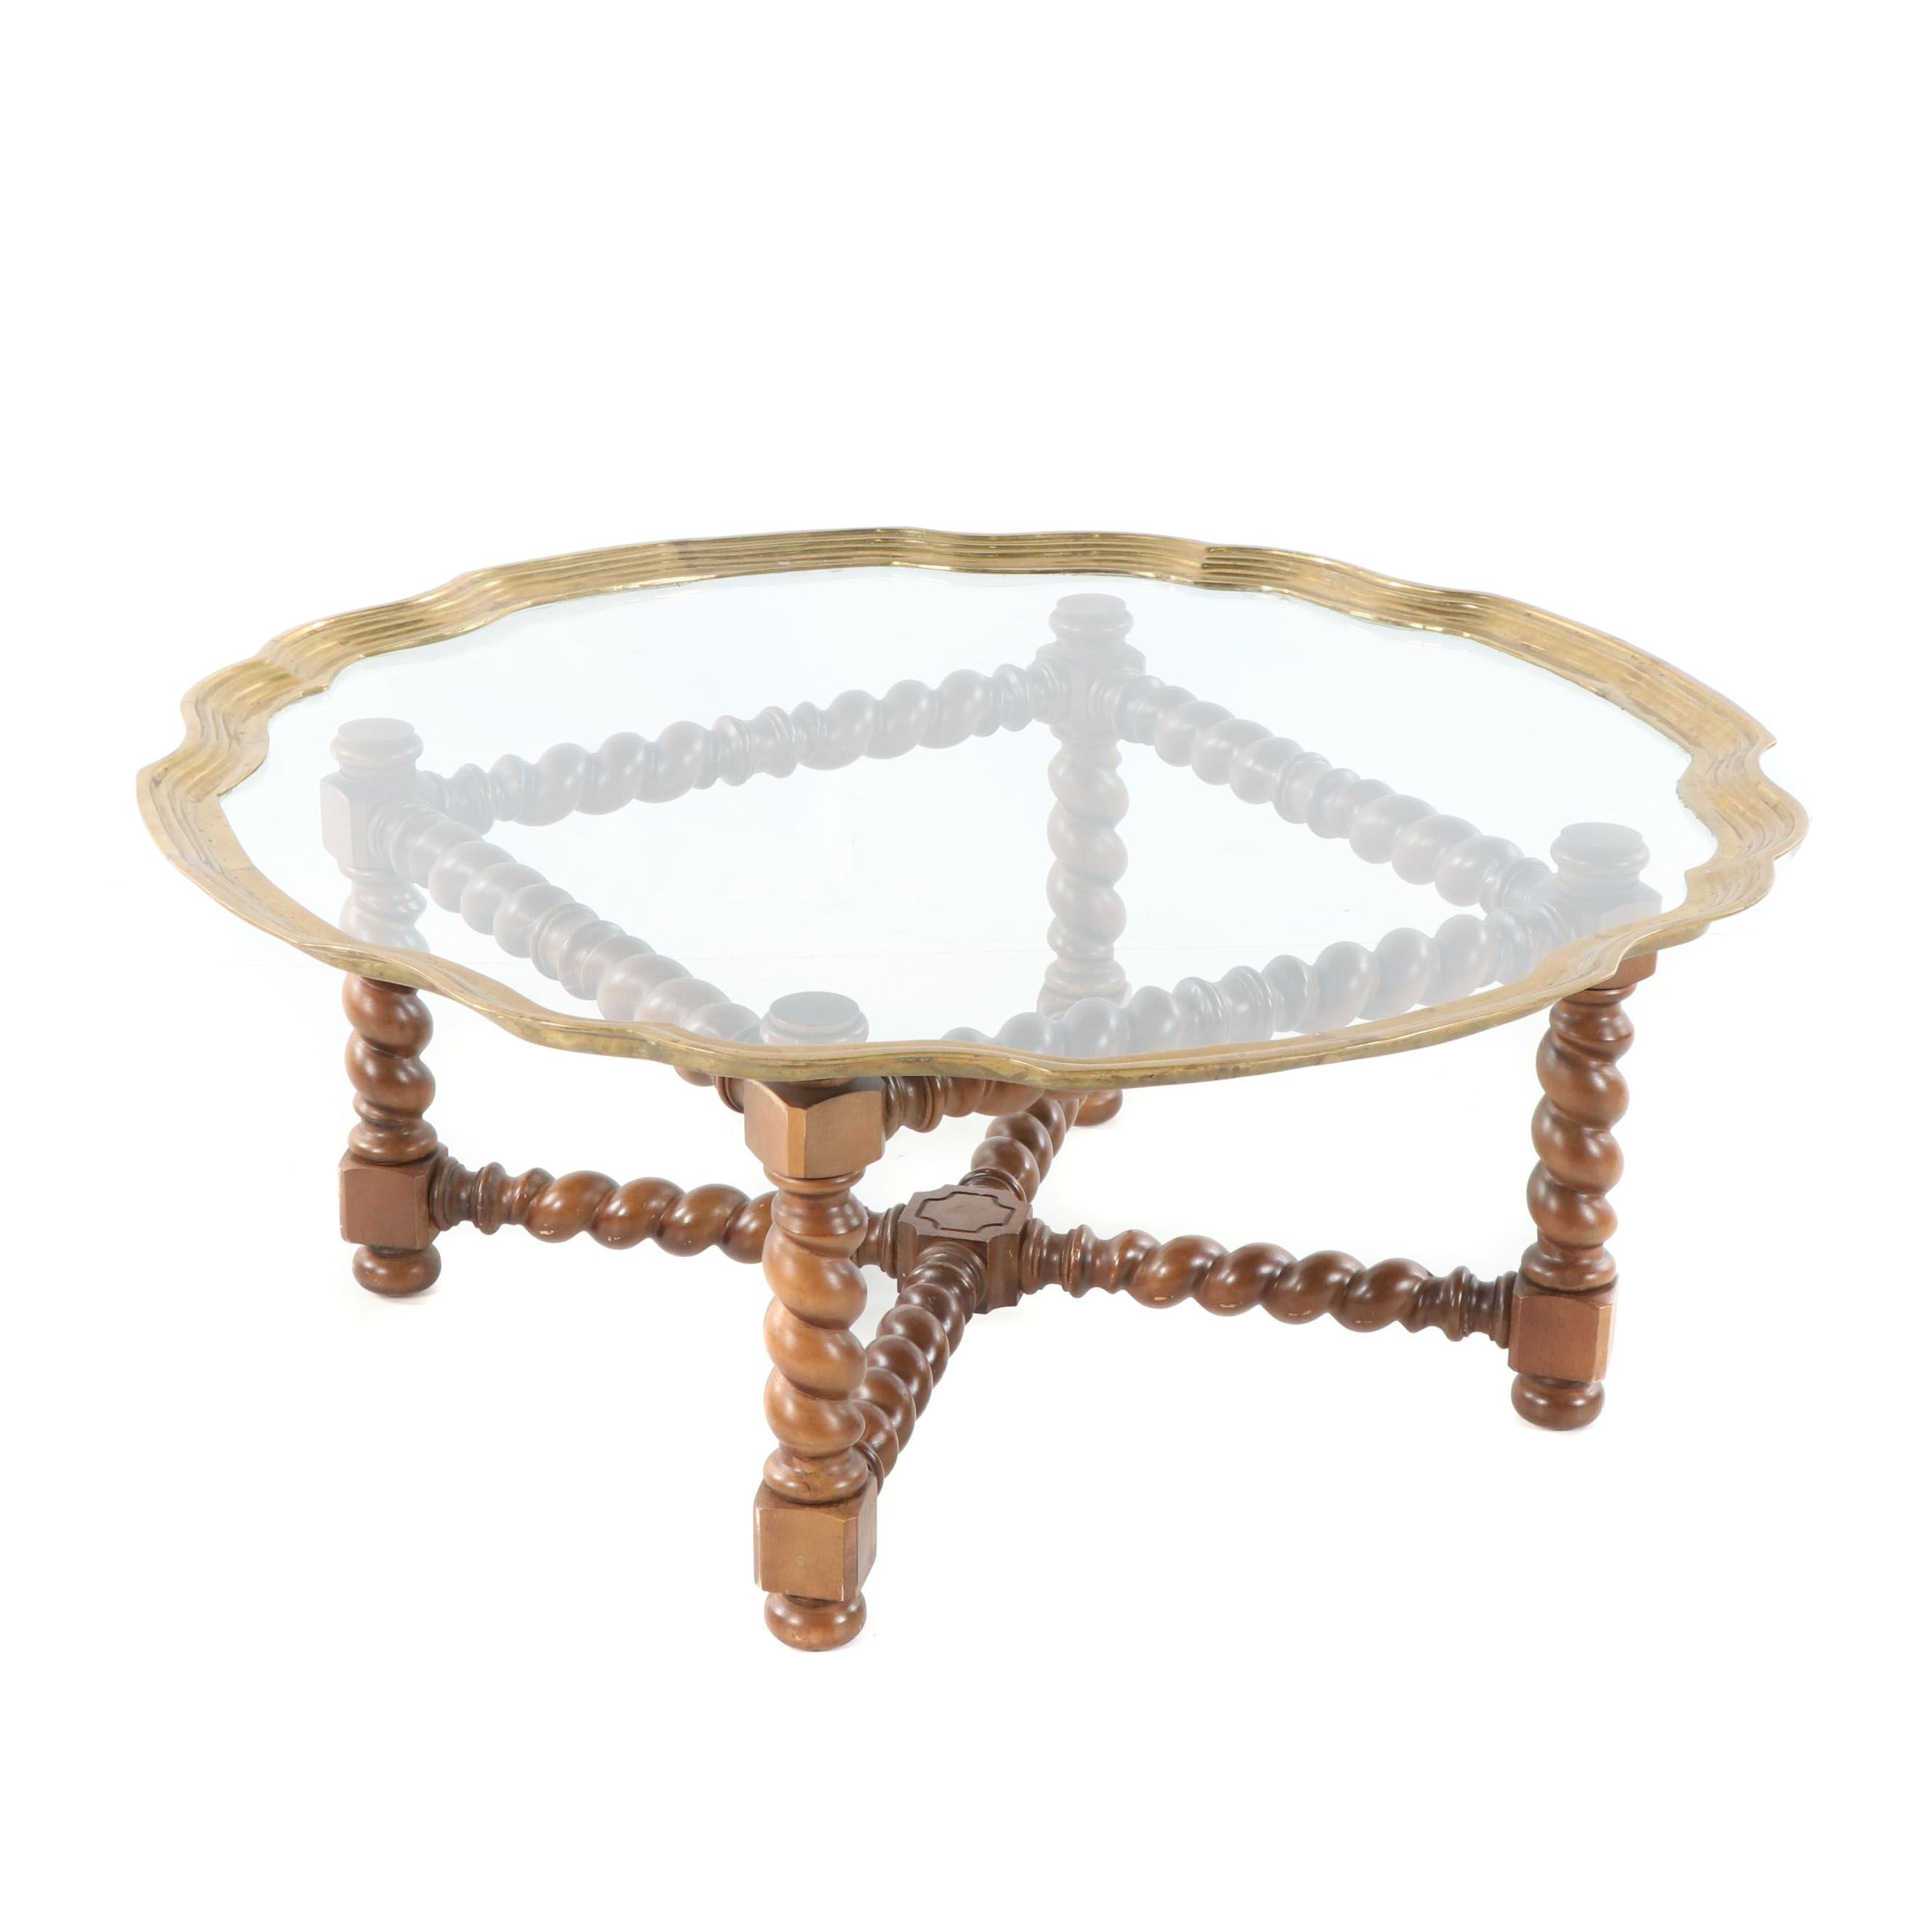 William & Mary Style Maple Cocktail Table with Brass Framed Glass Tray Top